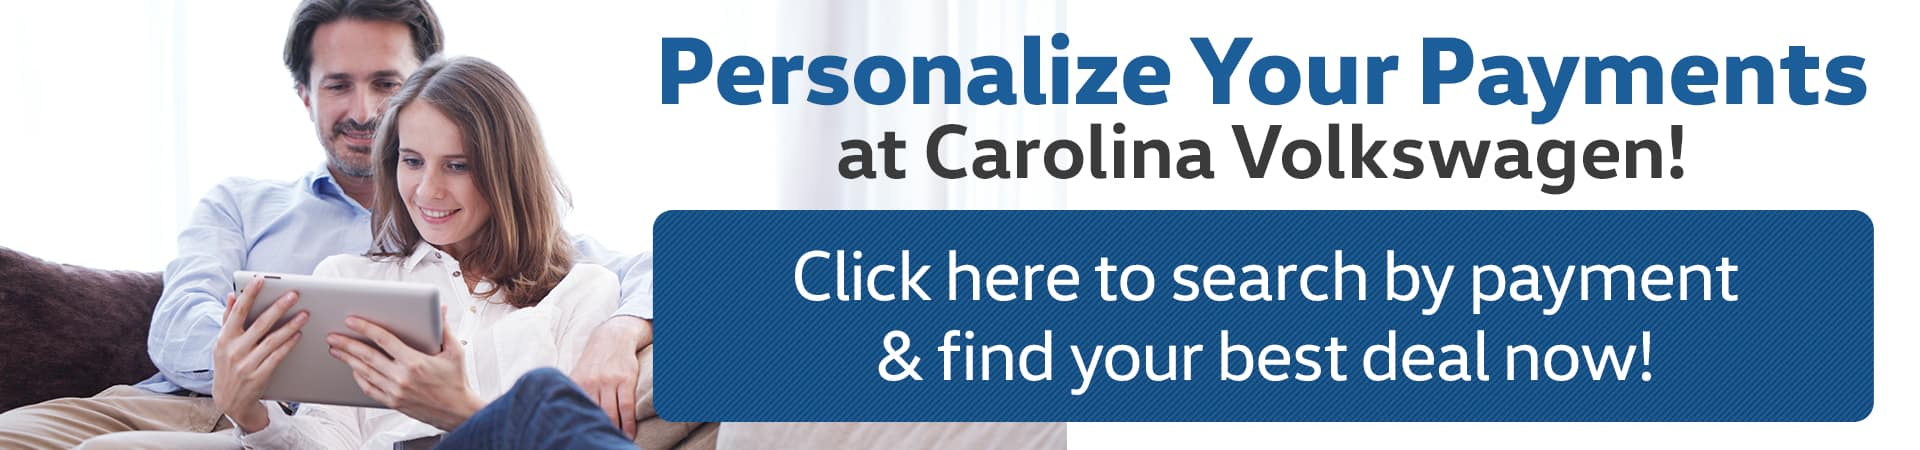 Personalize-Your-Payments